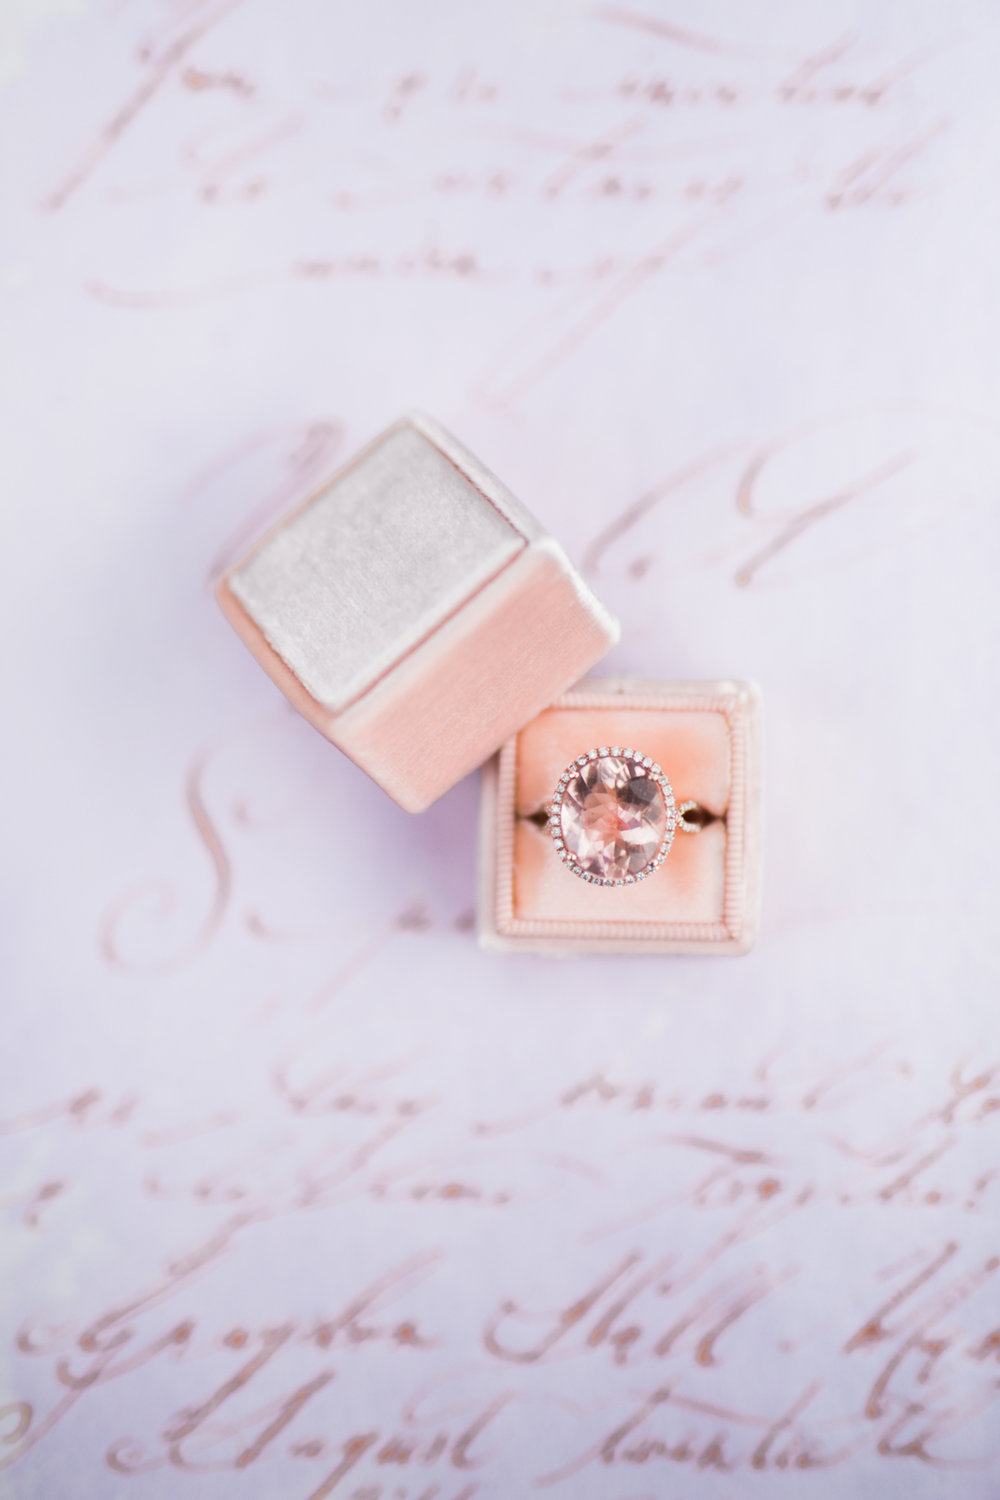 Rose gold ring - Fairytale Wedding (Wedluxe)